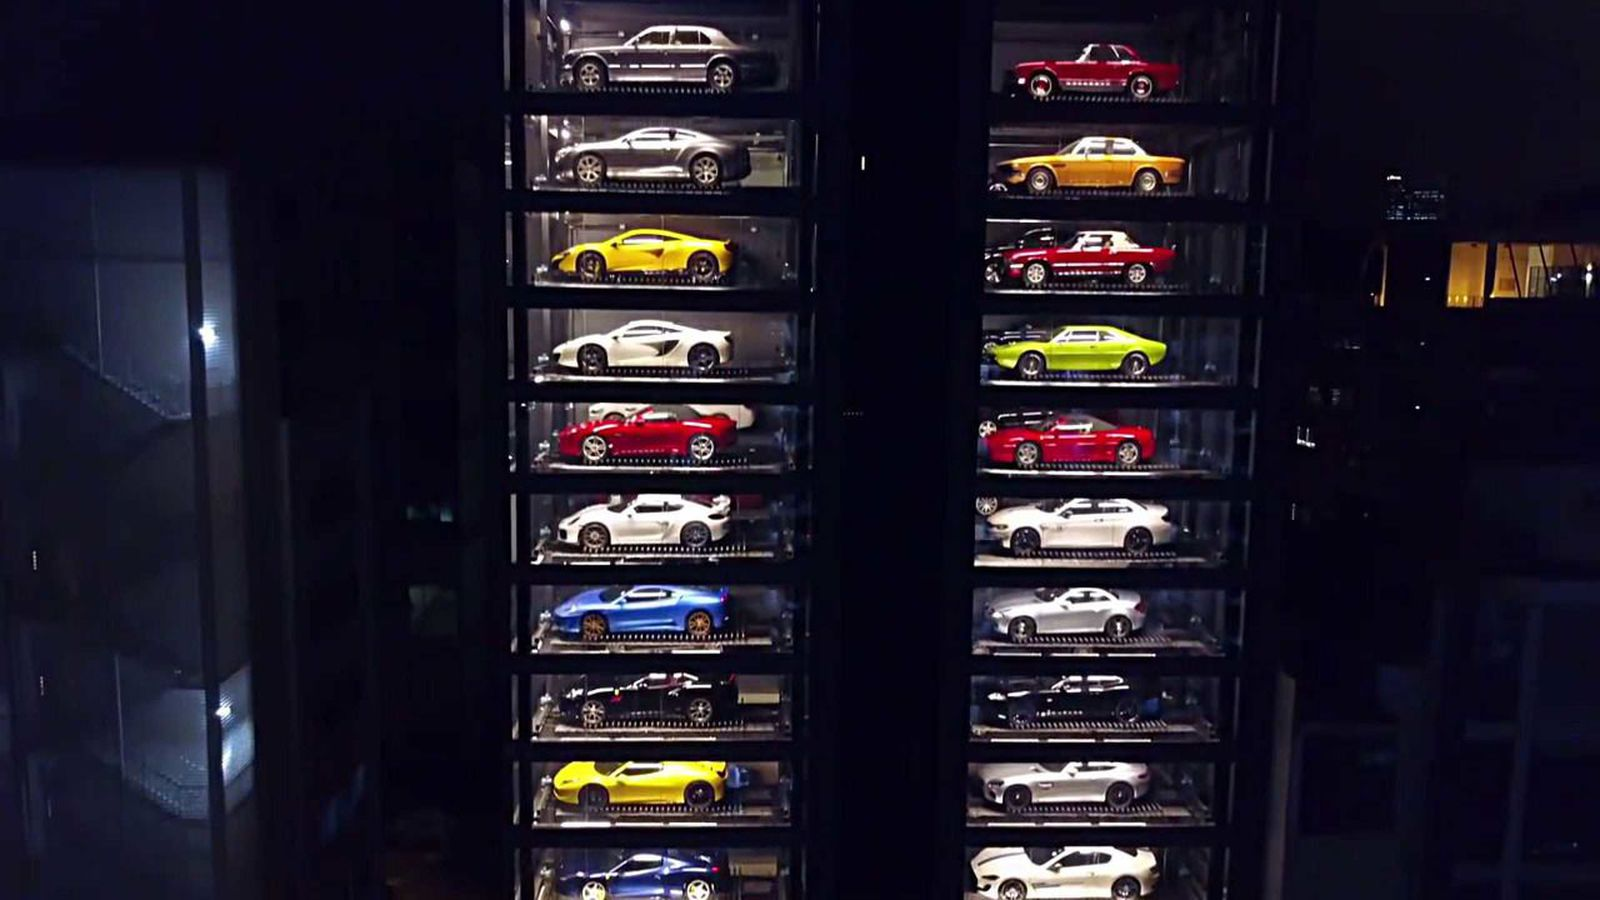 There S A Luxury Car Vending Machine In Singapore And It S Friggin